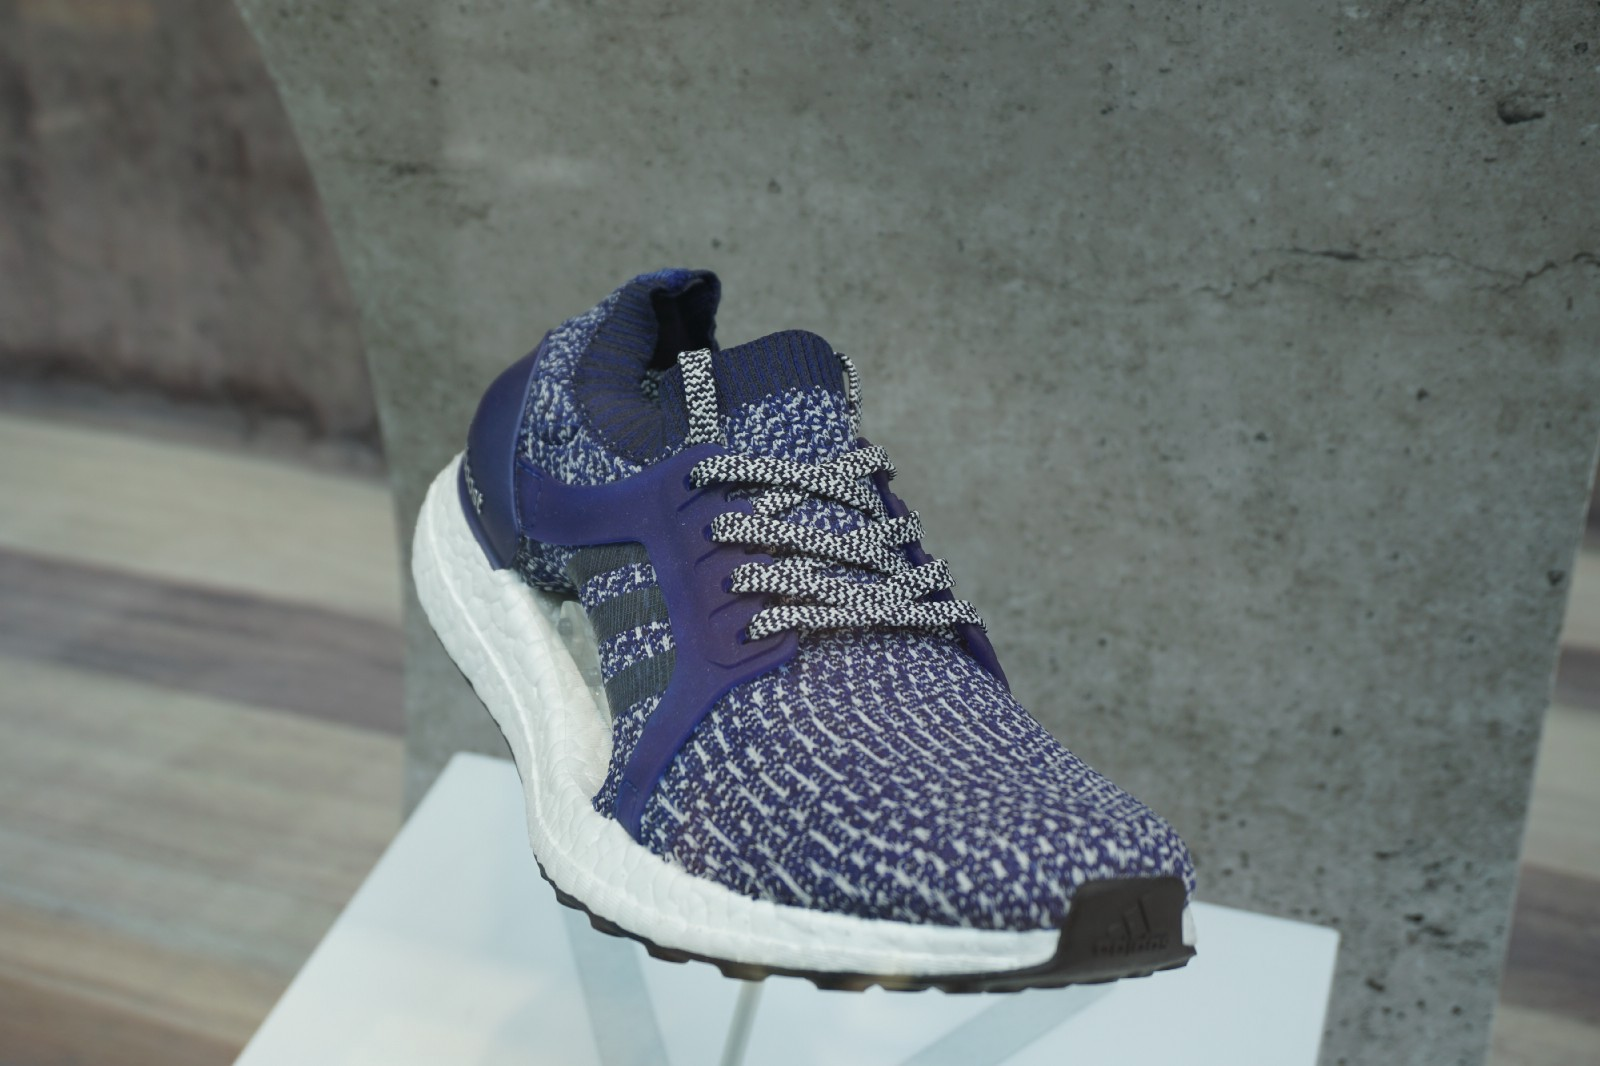 5bcda5de3 Sneakers of adidas are popular all over the world thanks to the  functionality for sports. Additionally, the form and design are also loved,  ...